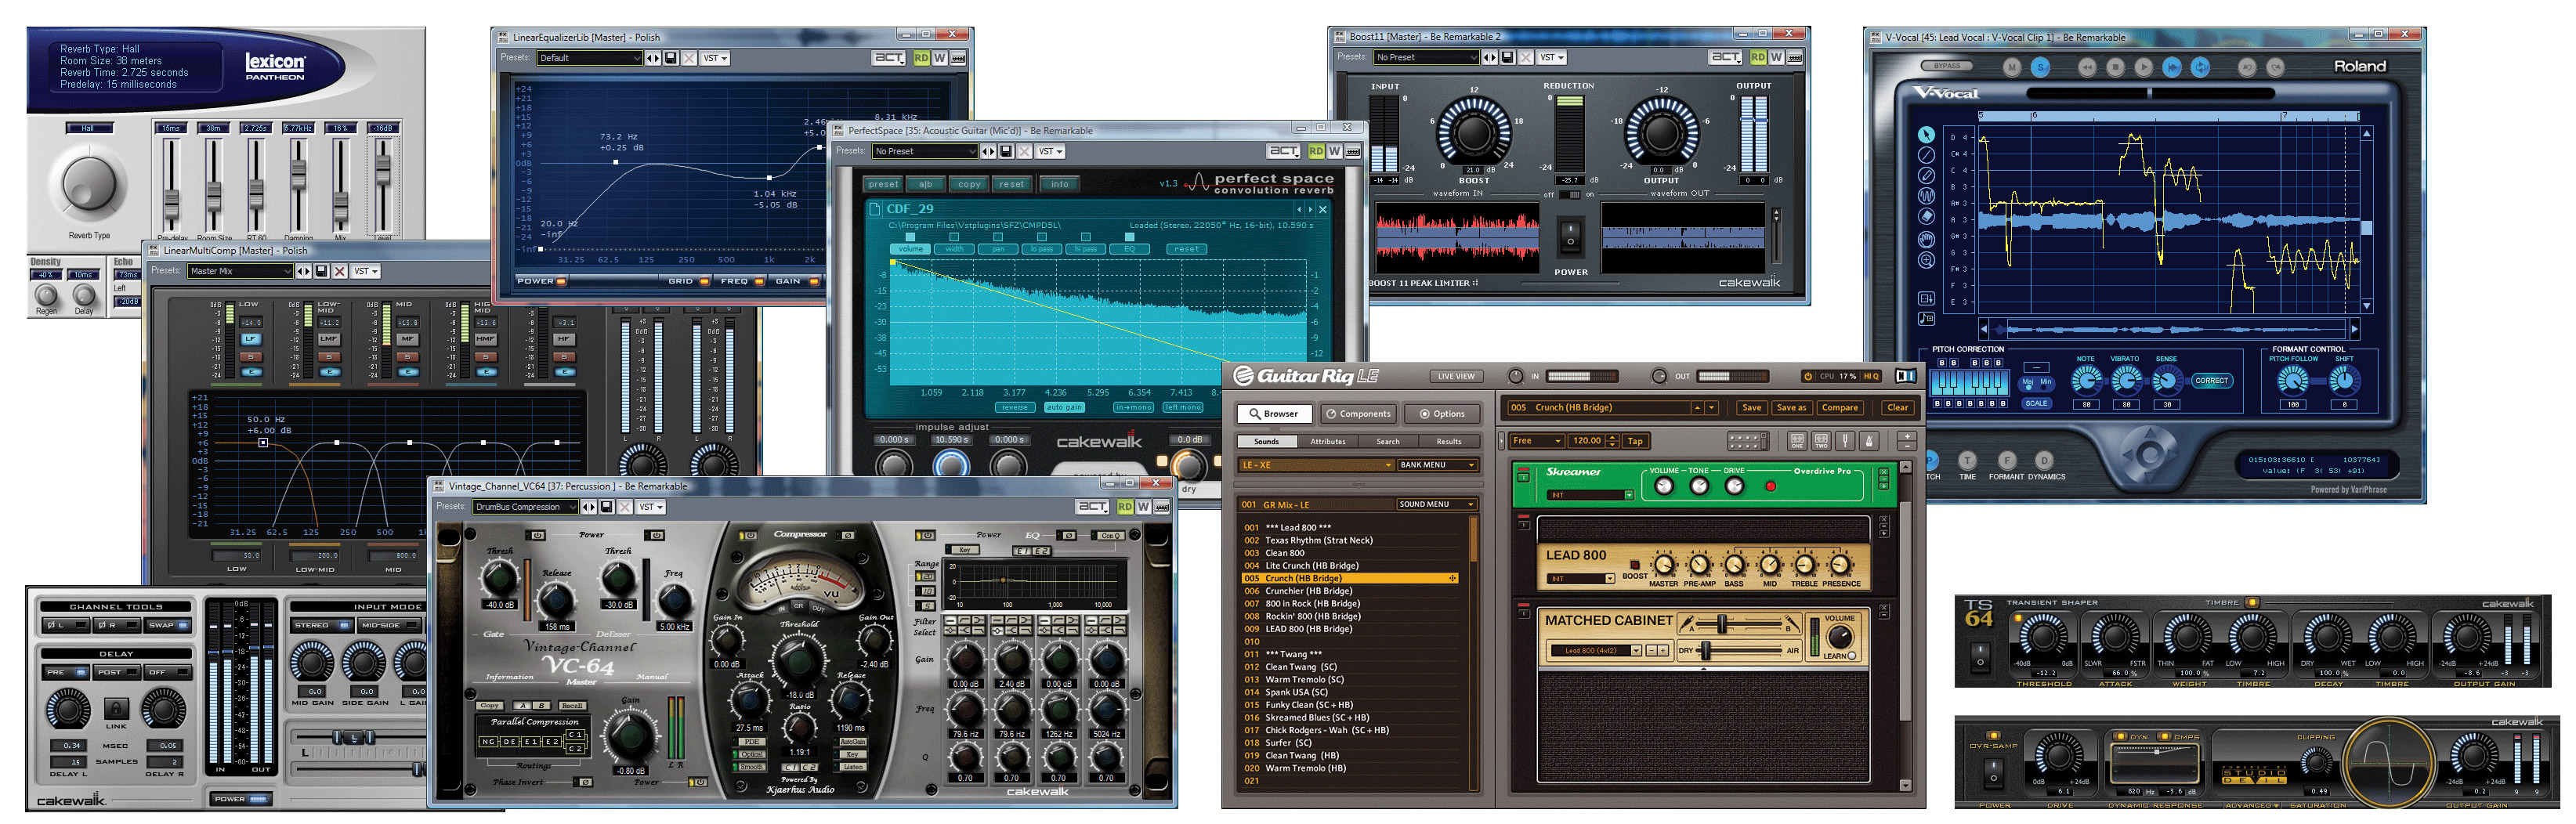 Cakewalk Sonar 8.5 Studio Screenshot Views